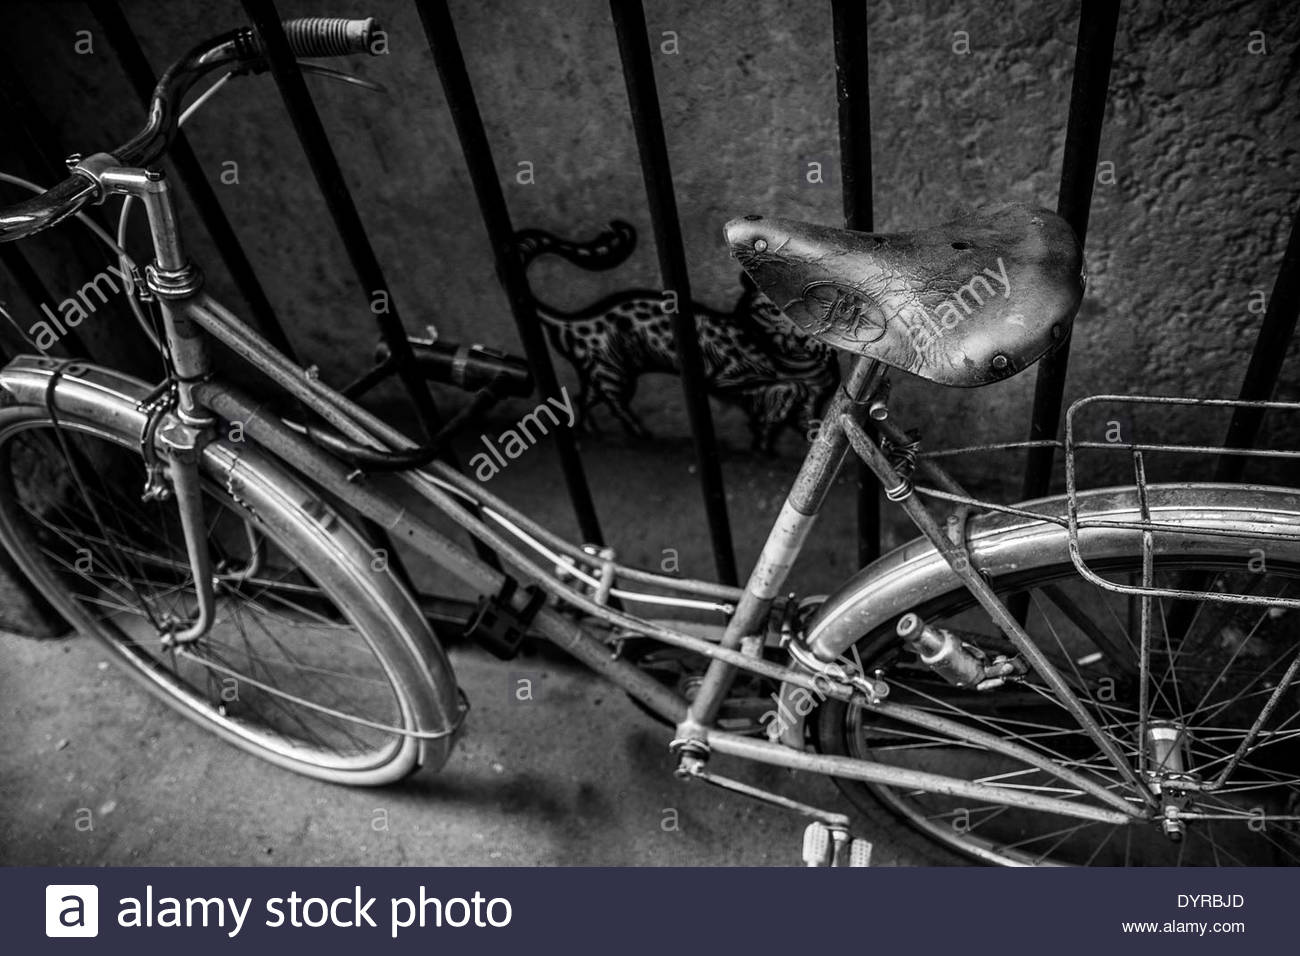 bicycle chained in lyon france stock photo royalty free image 68740853 alamy. Black Bedroom Furniture Sets. Home Design Ideas